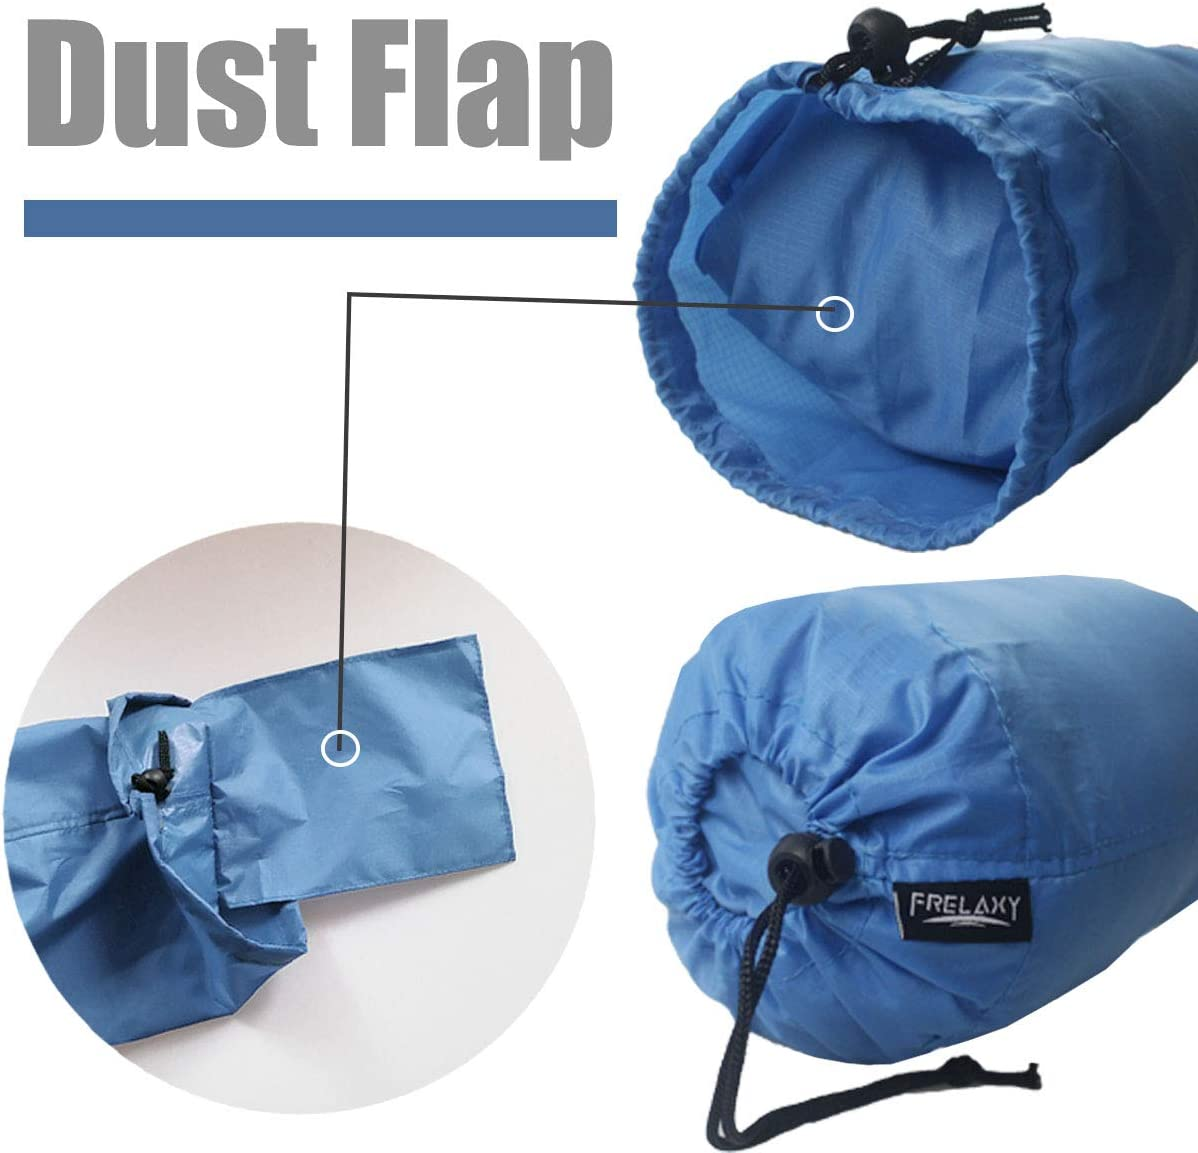 Ultralight Ditty Bags with Dust Flap for Travelling Hiking Backpacking Frelaxy Stuff Sack Set 3-Pack